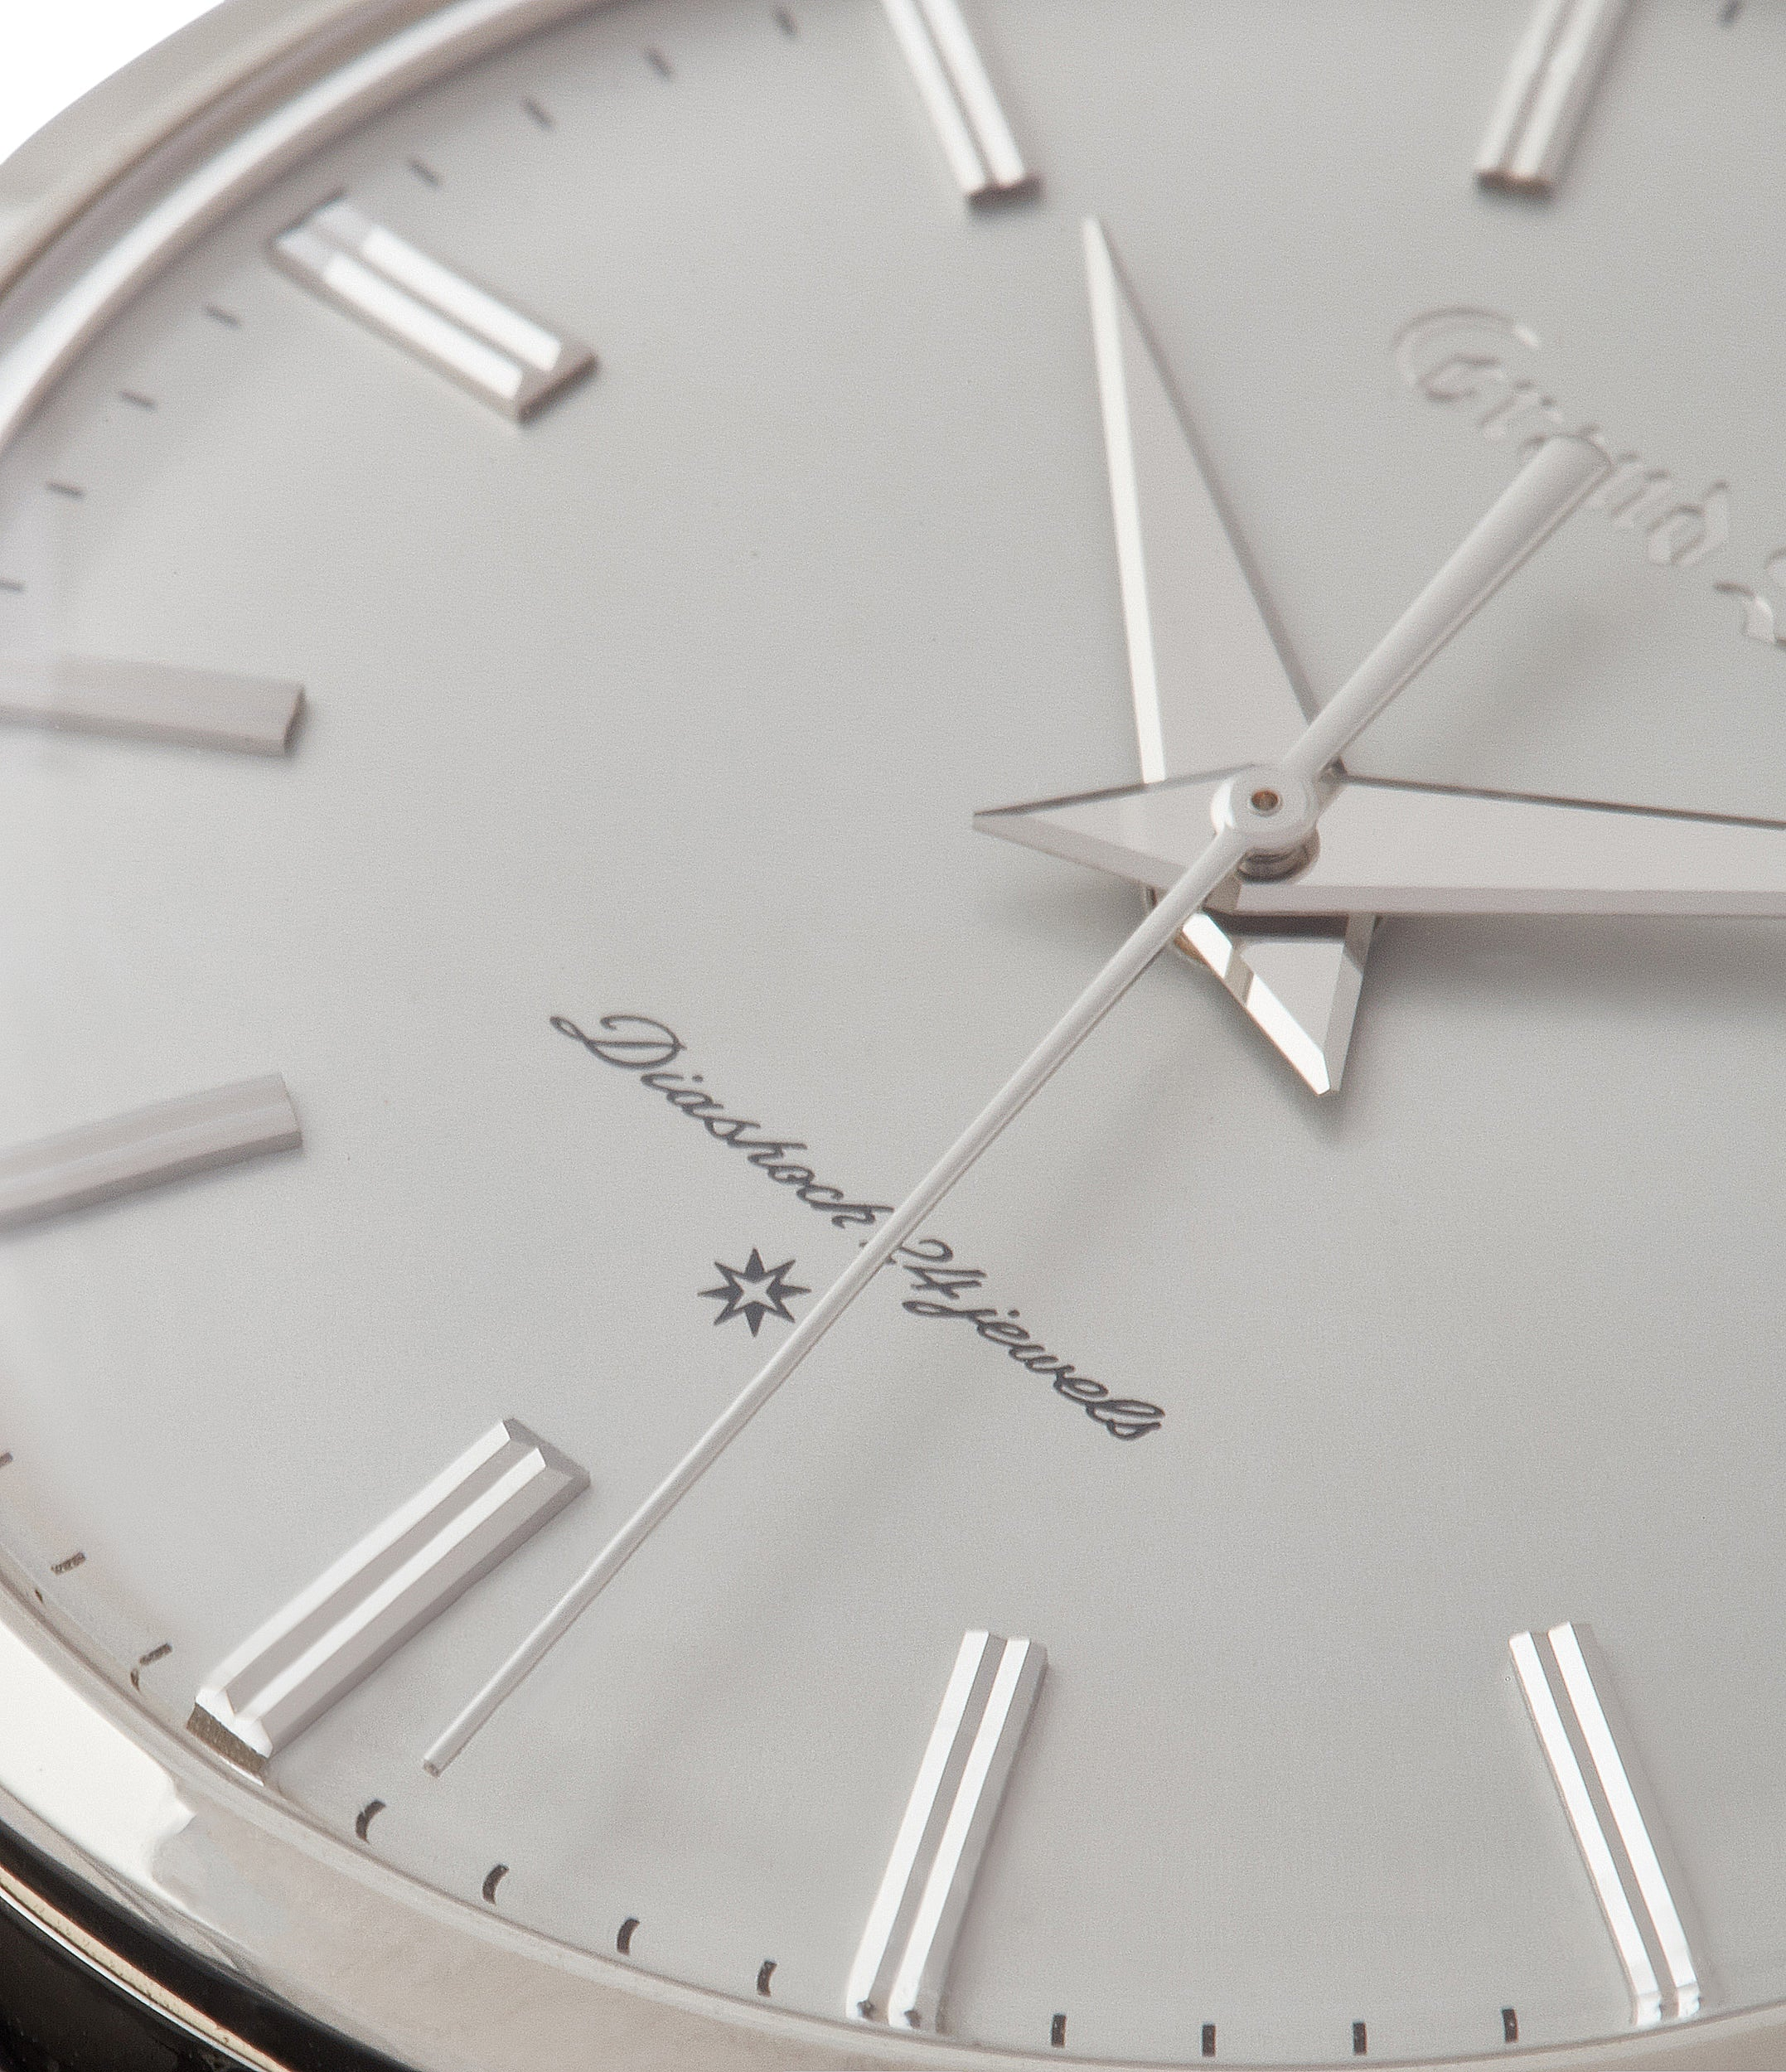 radial brushed solid gold dial Grand Seiko SBGW251 limited edition platinum time-only dress watch Japanese-made full set at A Collected Man London UK specialist of rare watches